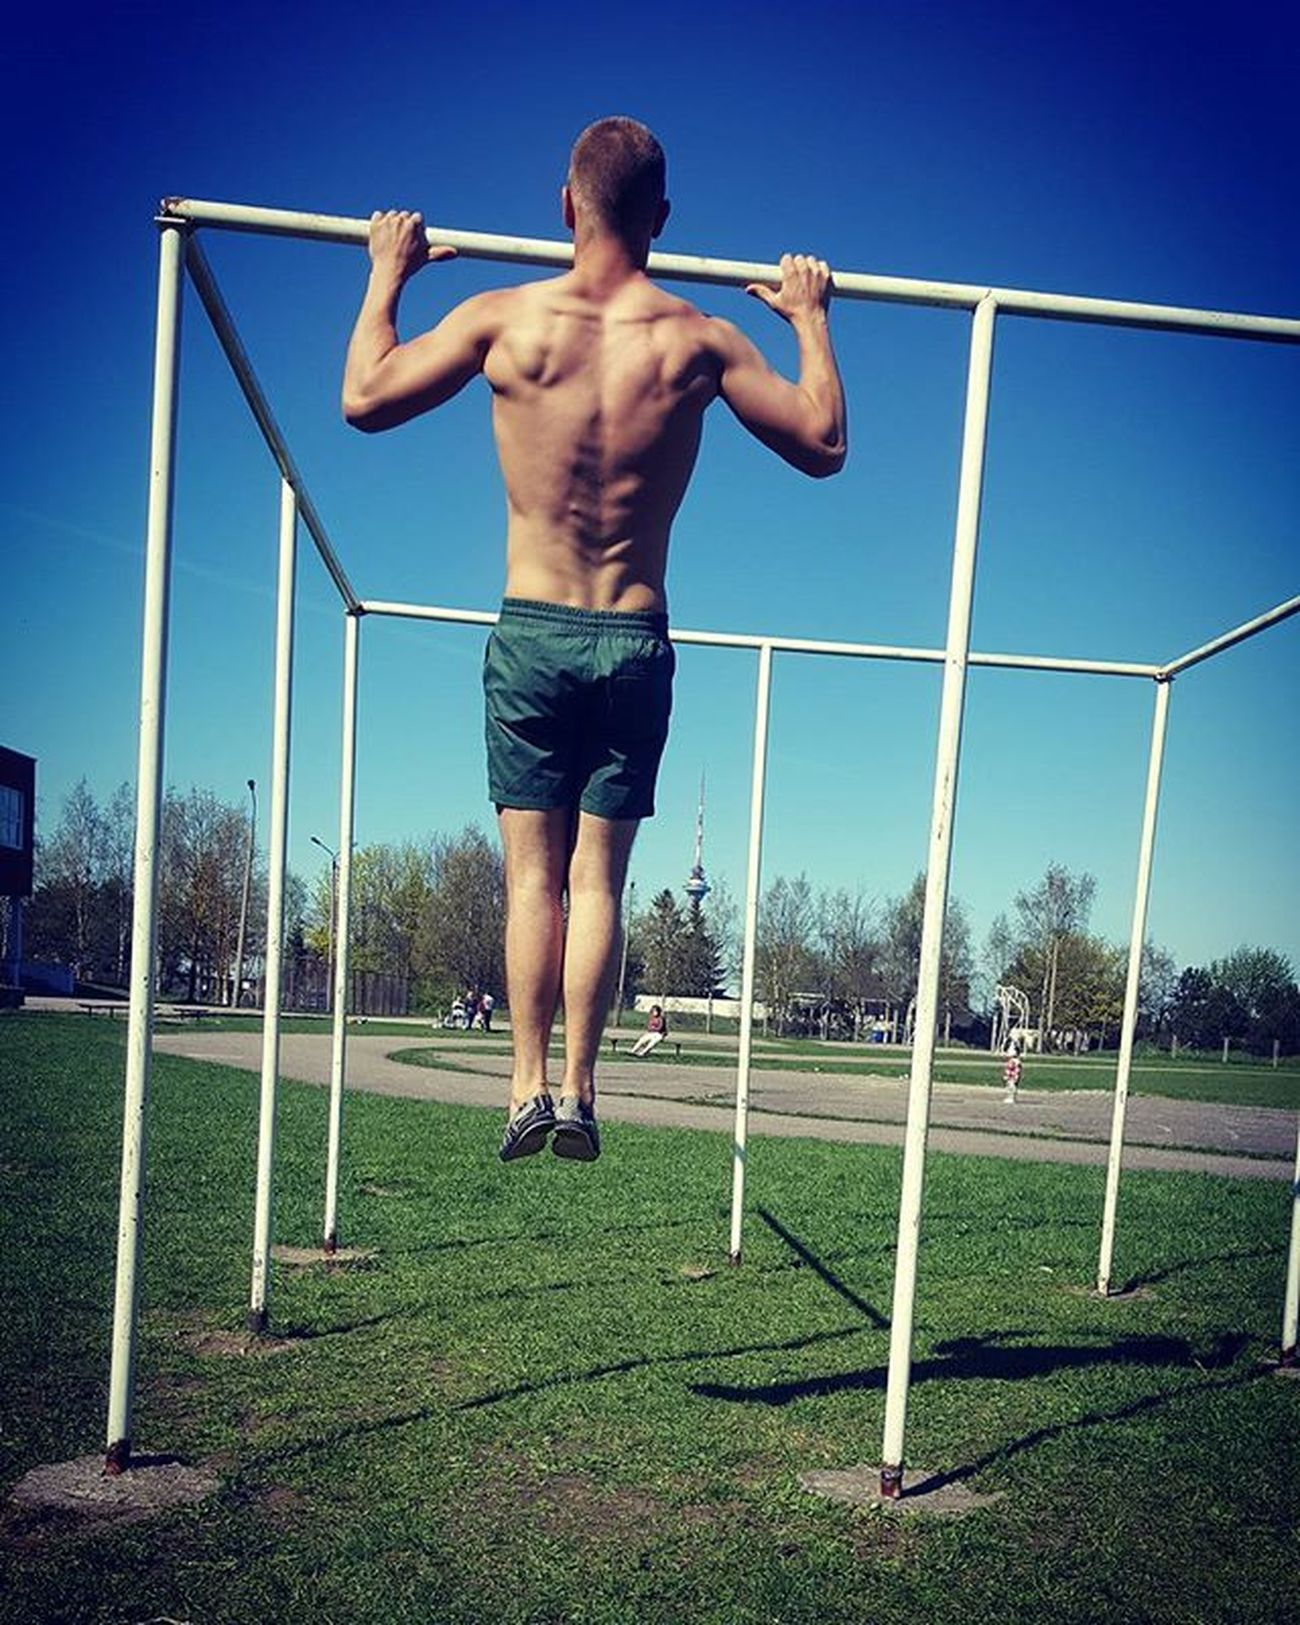 This day ! 🏜🌻 💪 ☛ Summervibes Summersmell Thissunday Thiswork Barworkout Baristi Calisthenics Backworkout Bodybuildinglifestyle Lovebar Bebest Bigdream